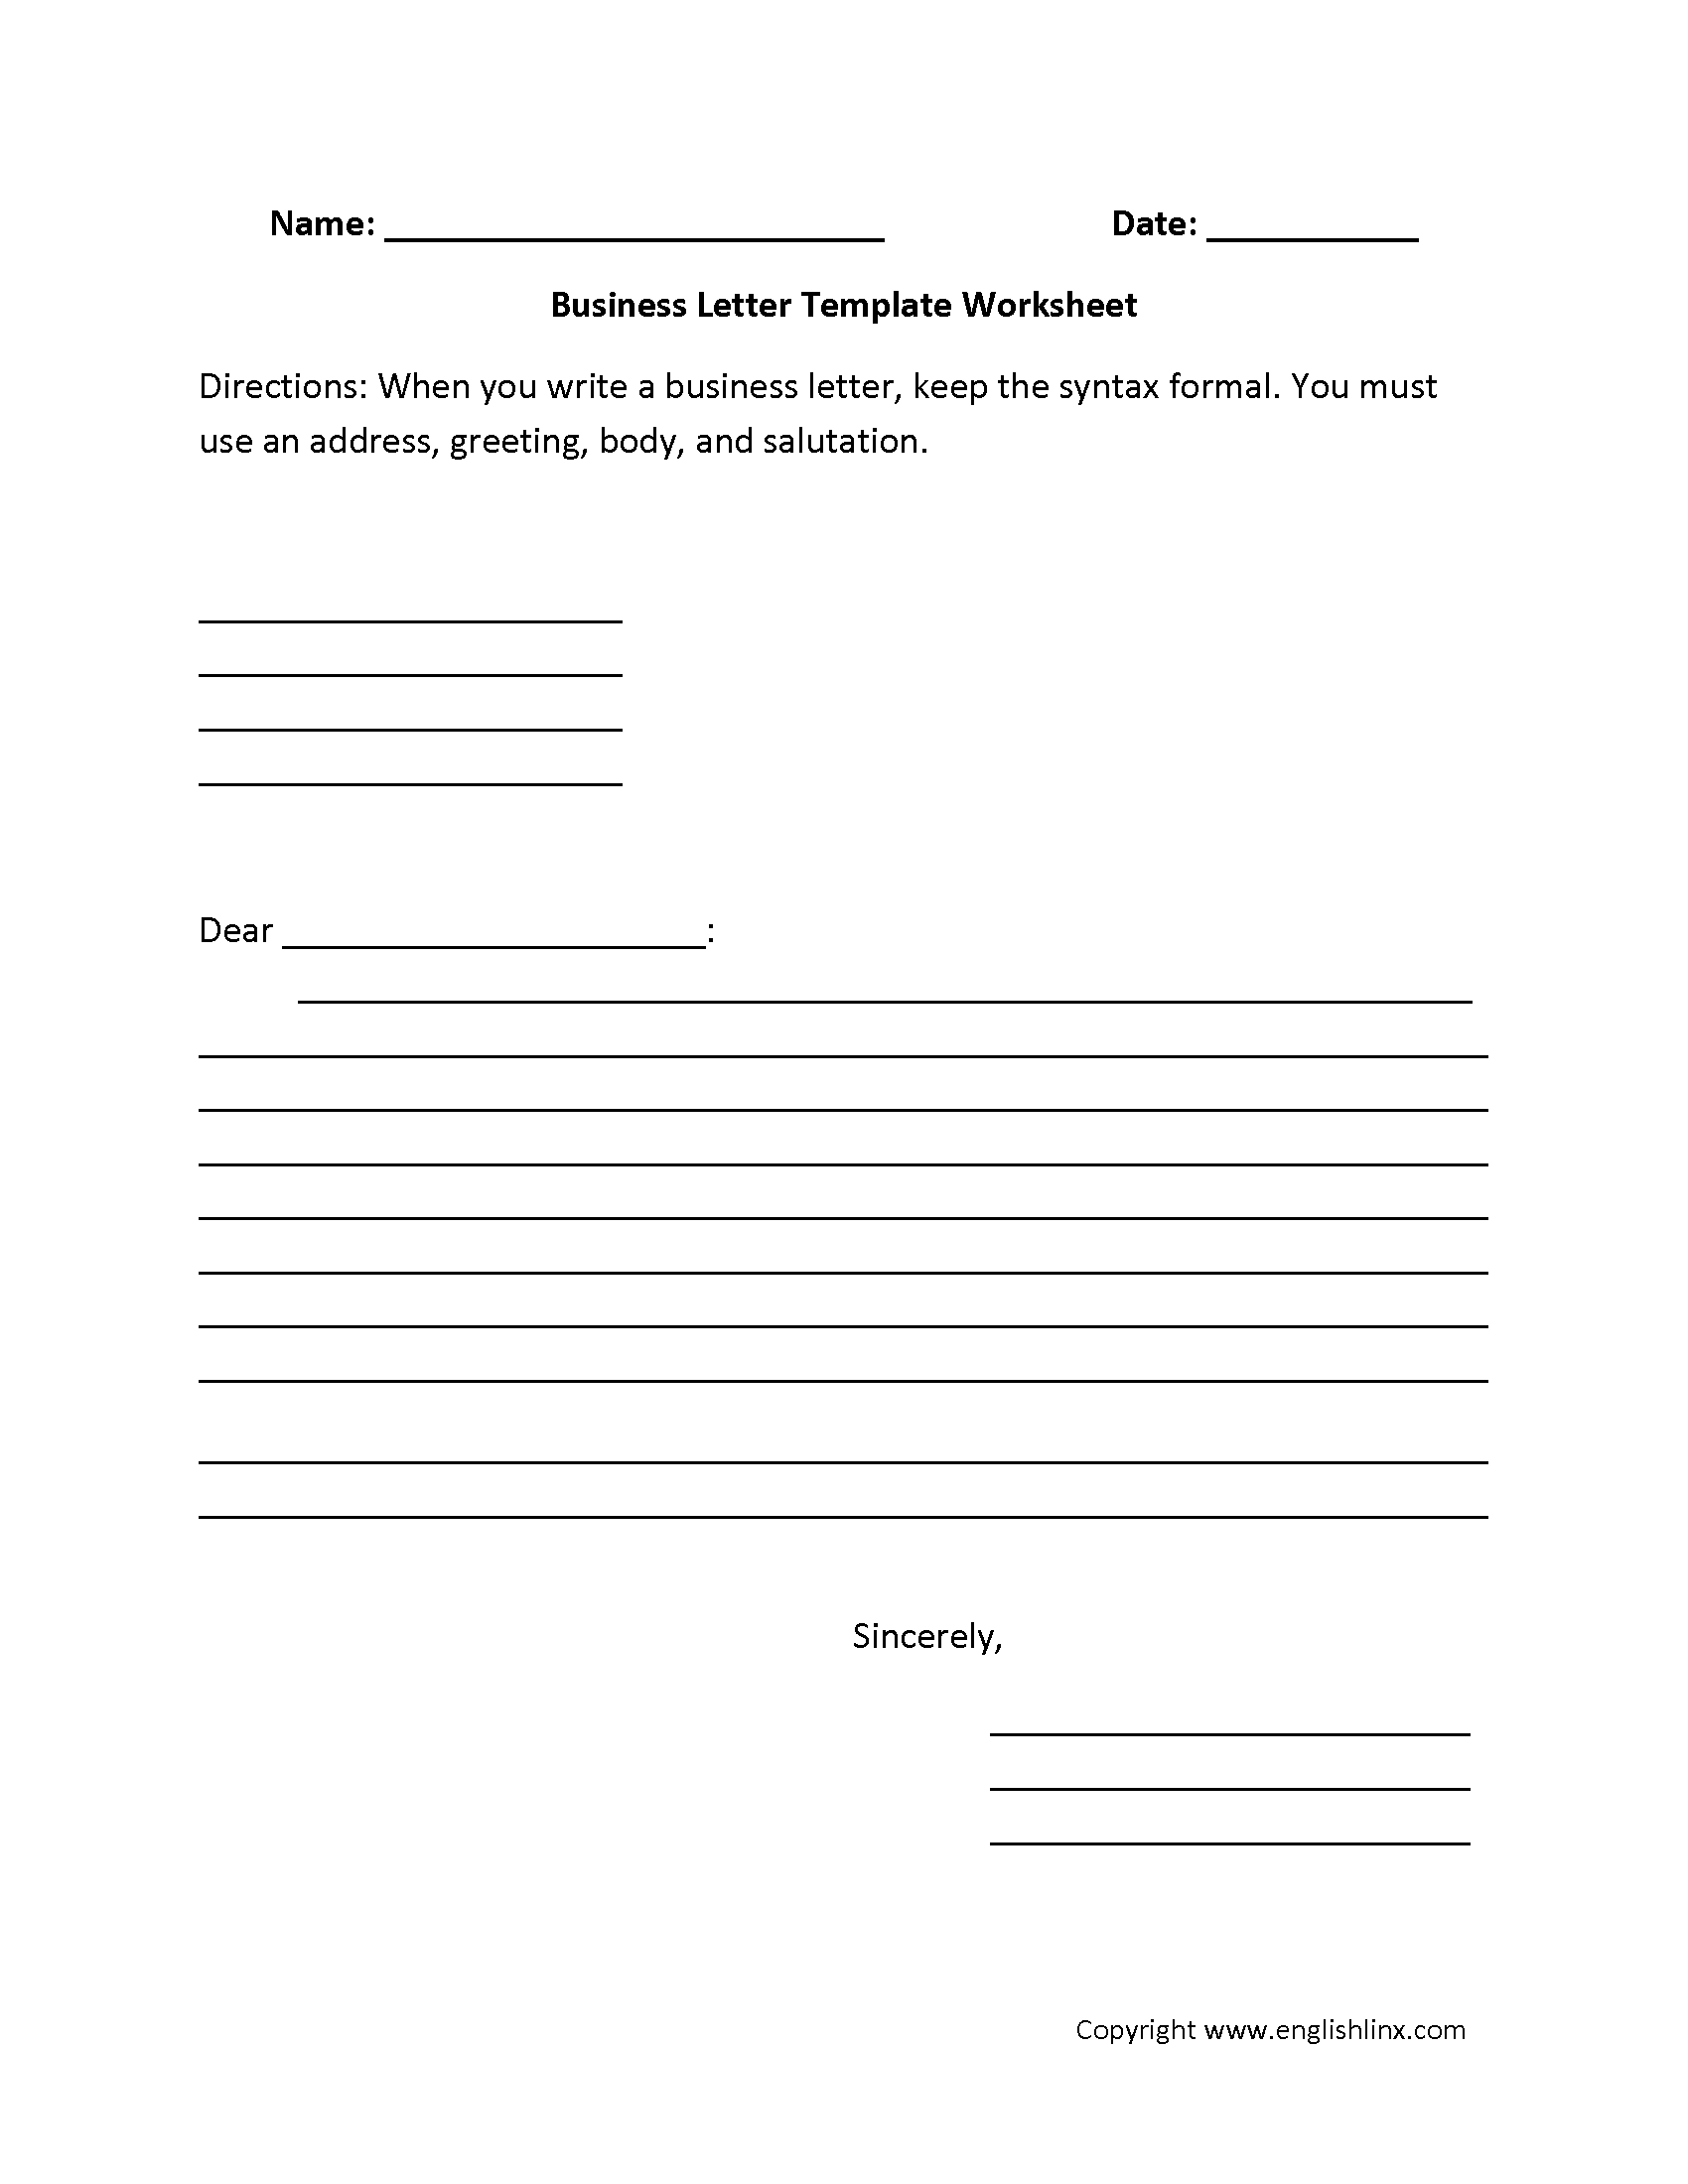 Sample Letter 5th Grade. Business Letter Writing Worksheets